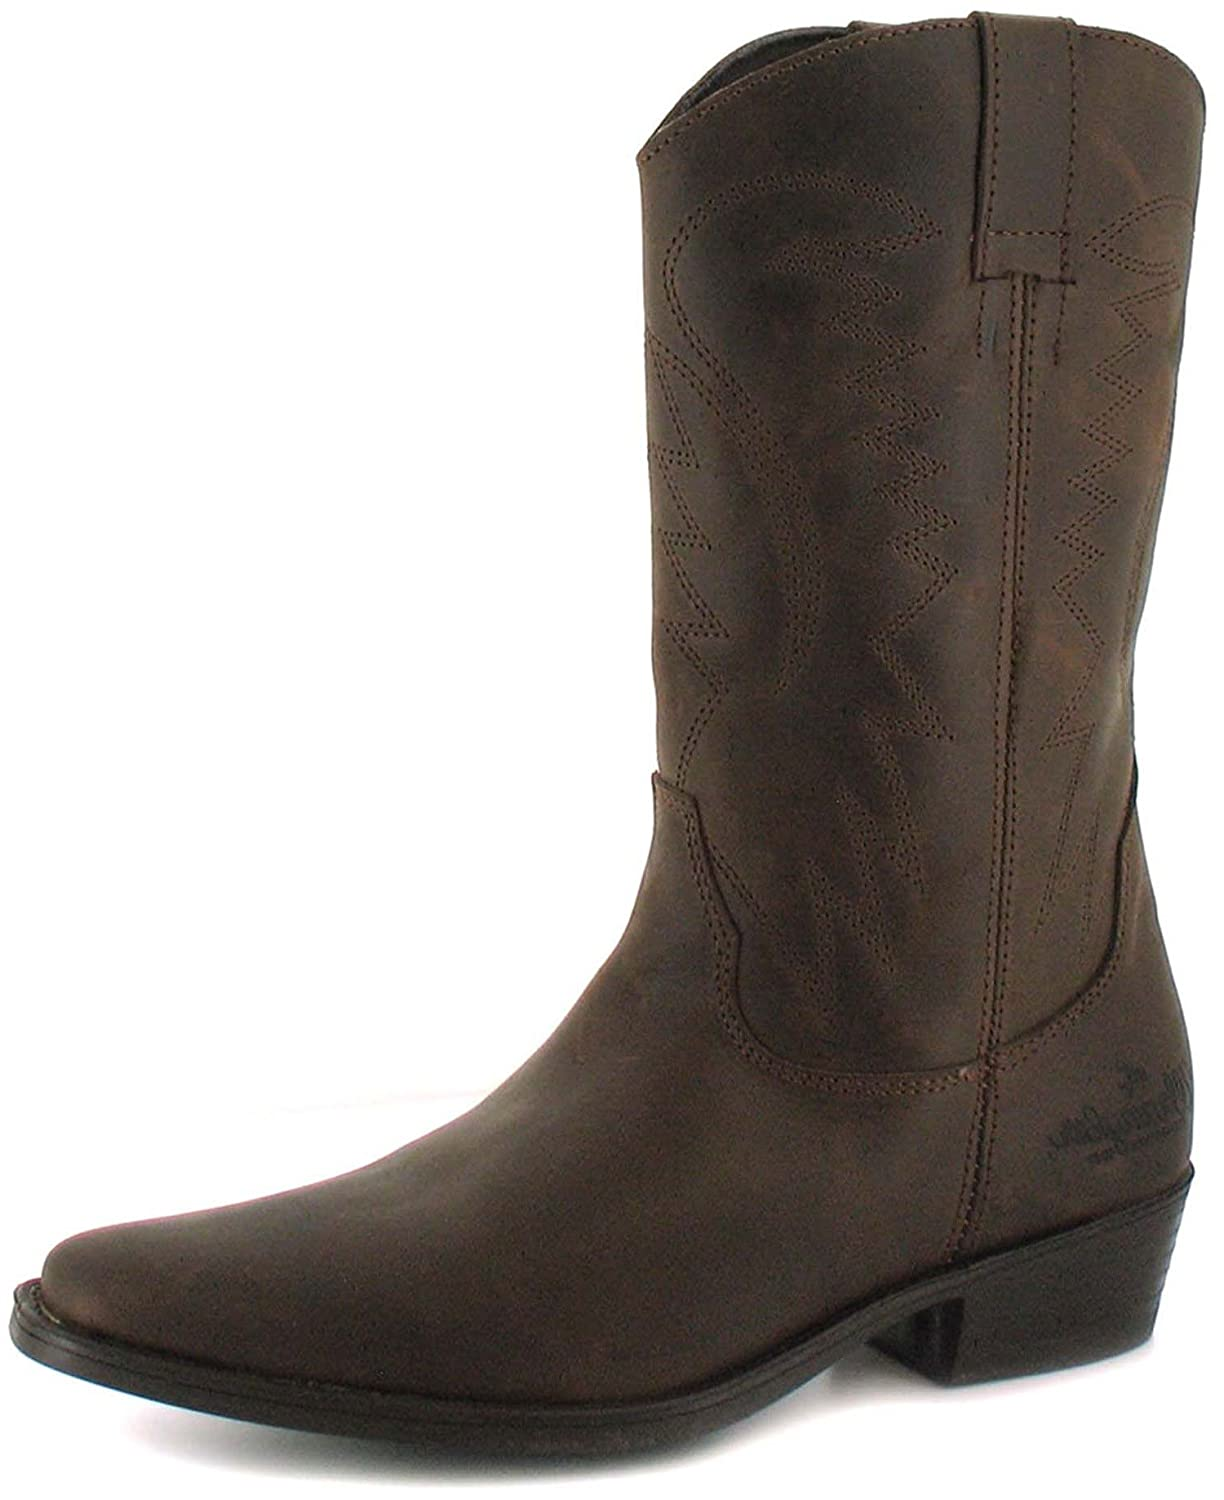 b9fa1afeae5 Wrangler Tex Hi Mens Other Leather Material Boots Dark Brown